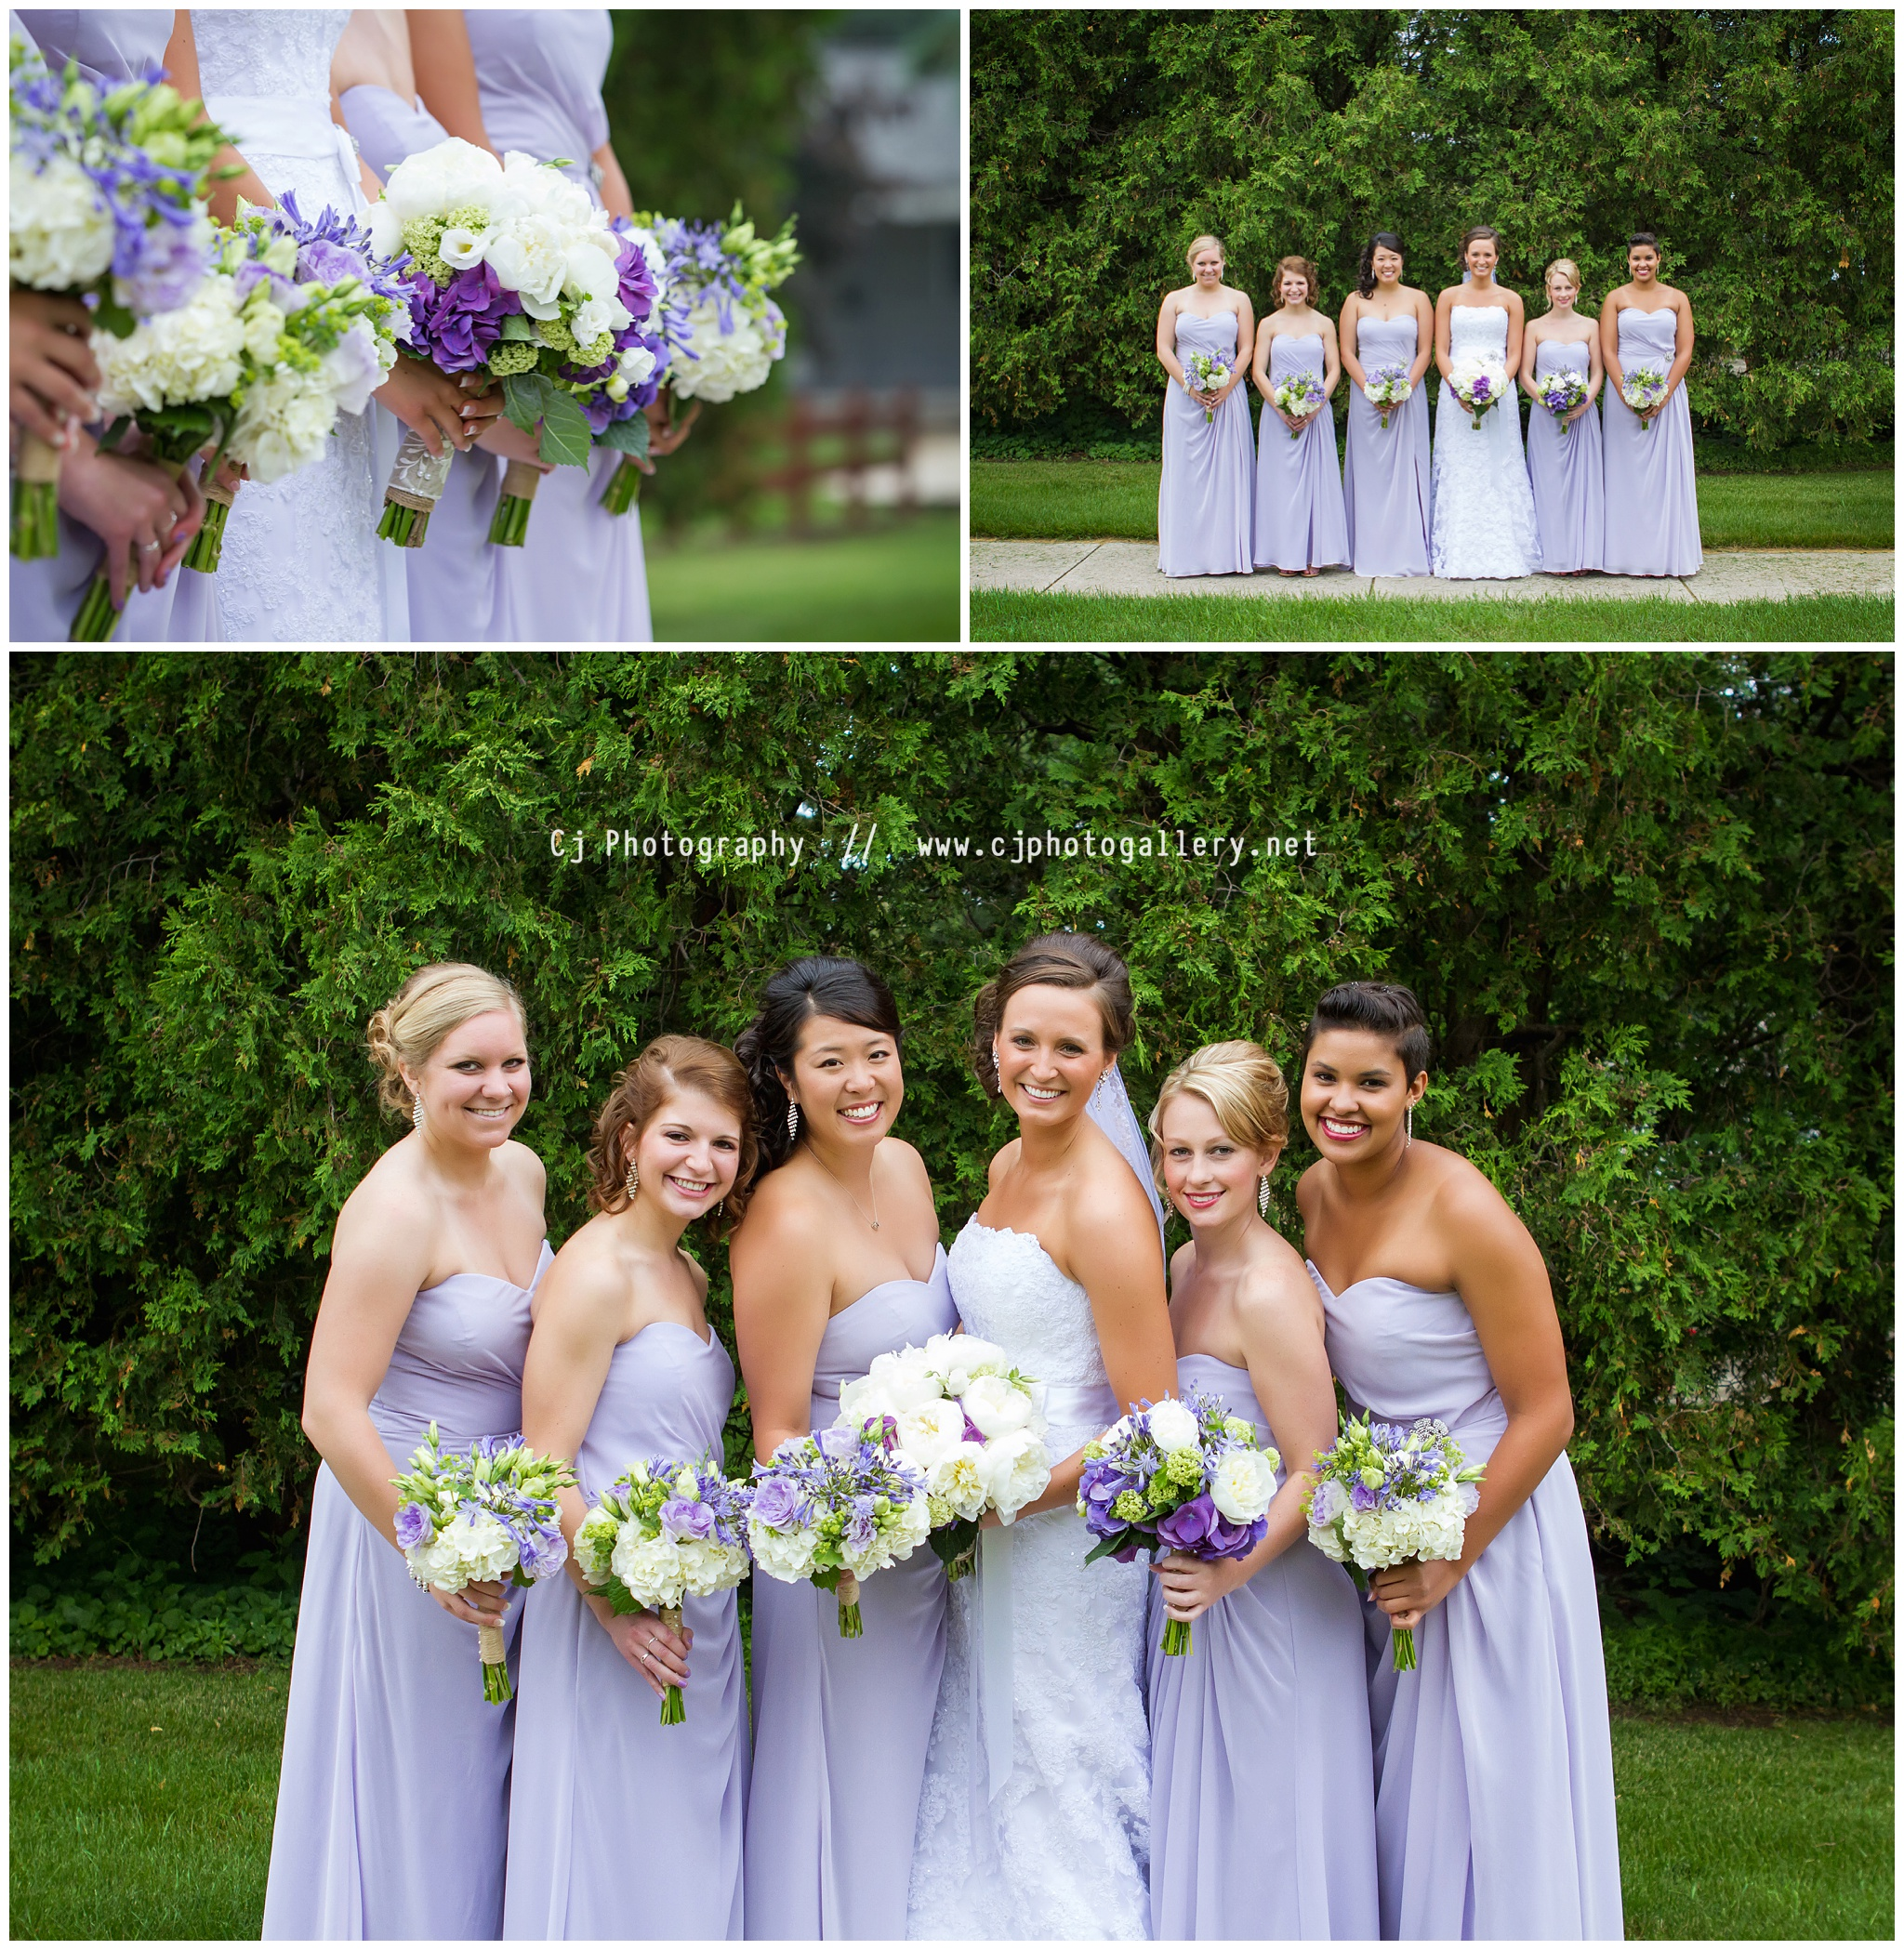 Cj Photography | Central Wisconsin Photographers